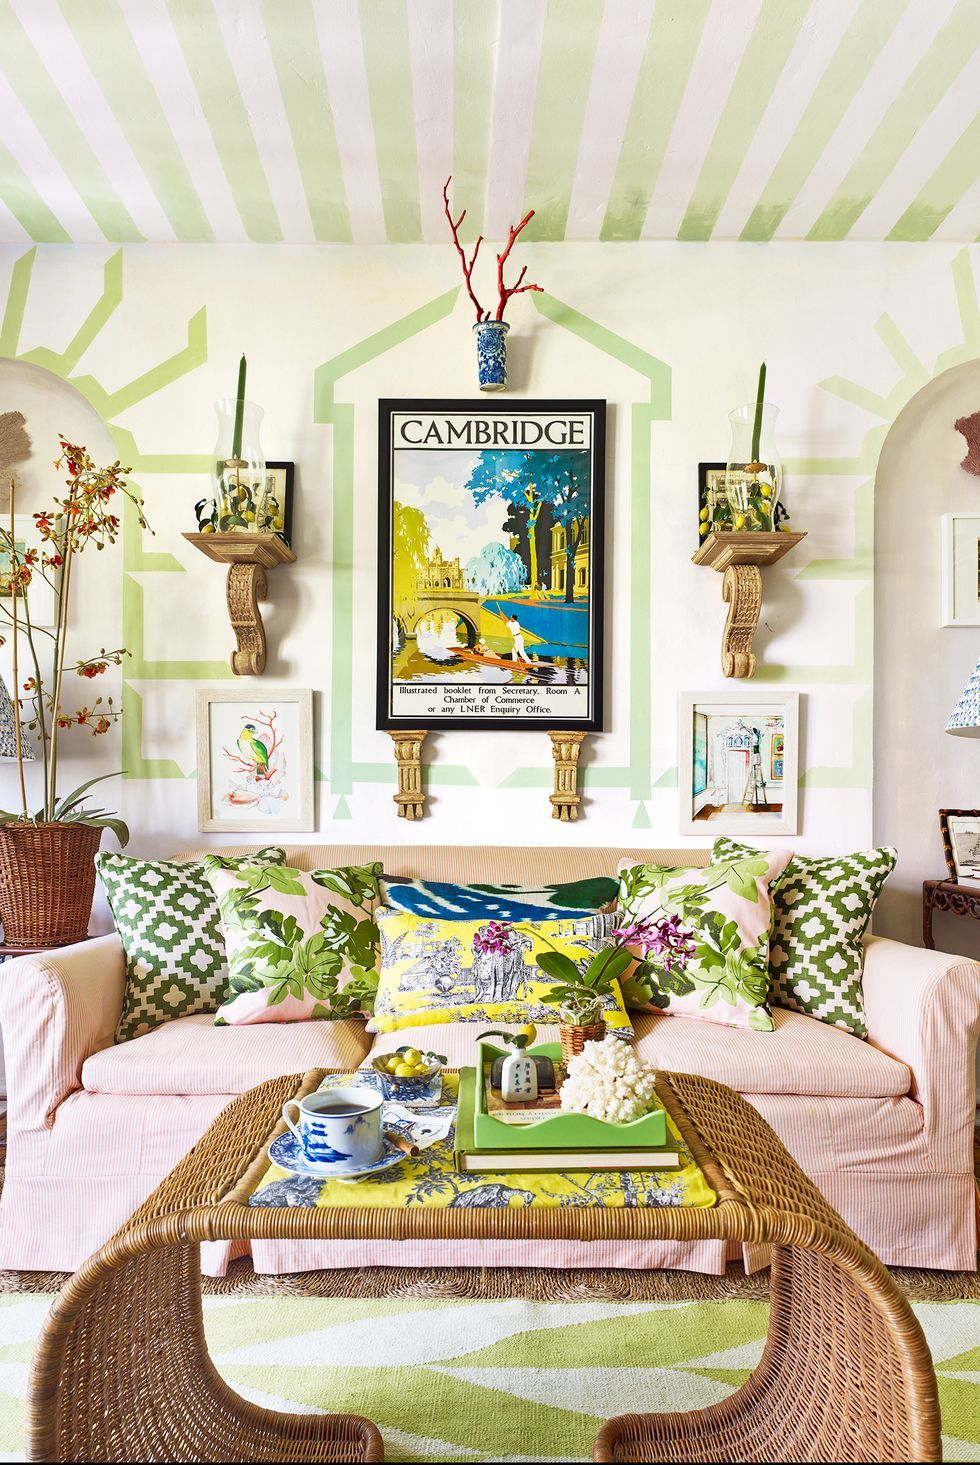 30 Simple Summer Decorating Ideas That Make Every Day Feel Like A Vacation In 2020 Decor Living Room Colors Home Decor #tropical #decor #for #living #room